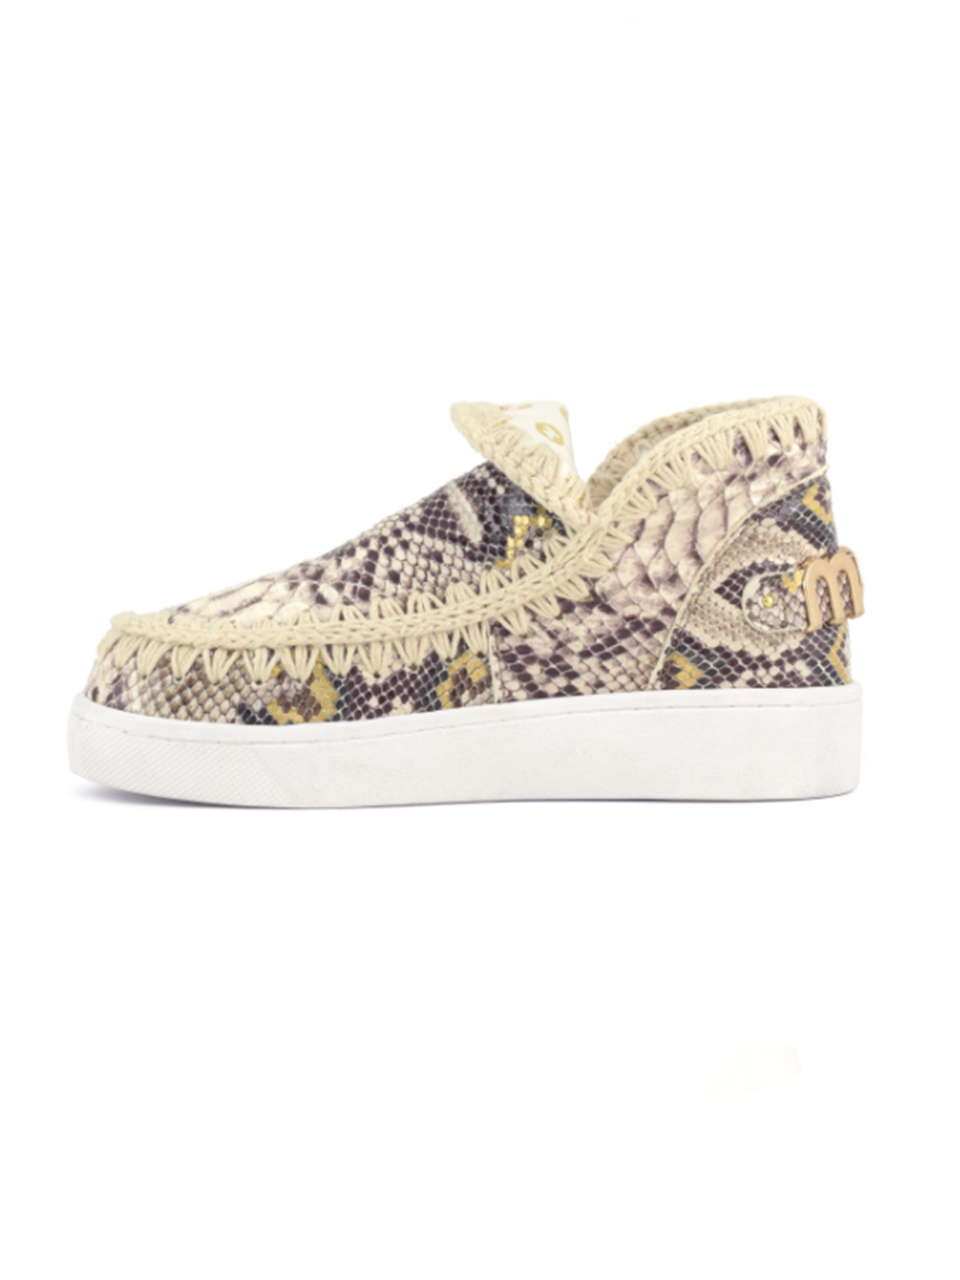 MOU Summer Eskimo Sneakers in Rock Snake Side View x1https://cdn11.bigcommerce.com/s-3wu6n/products/33987/images/113235/14__18612.1621283979.244.365.jpg?c=2x2